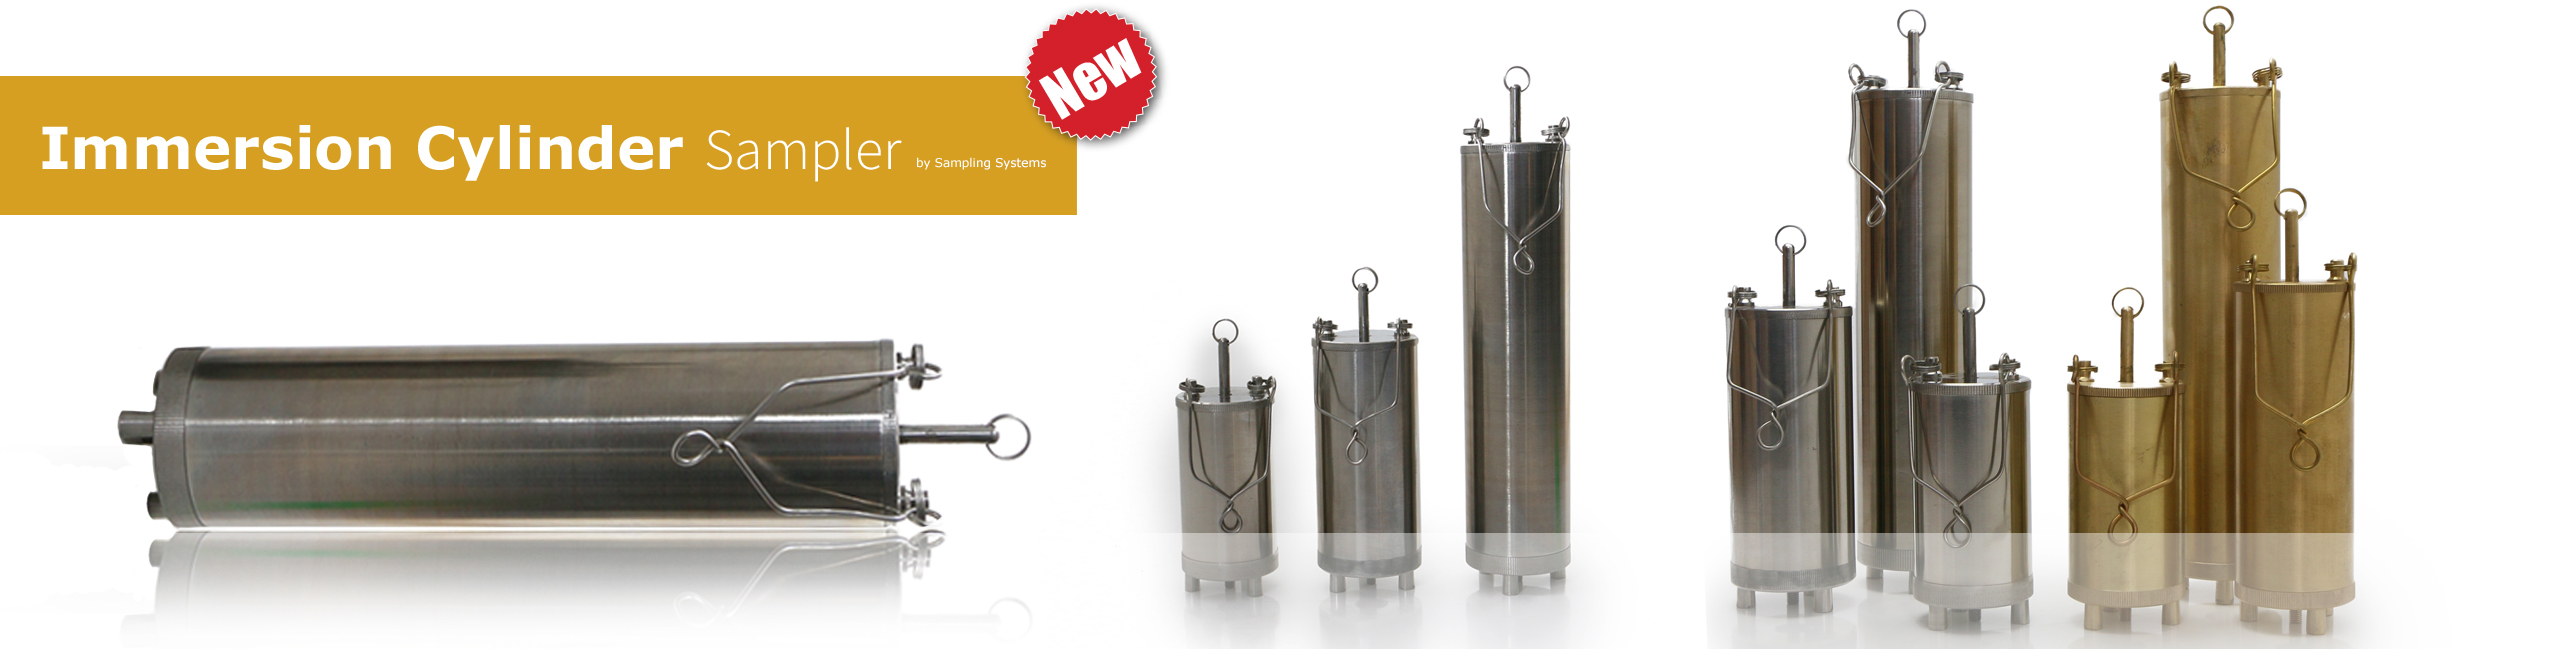 Immersion Cylinders